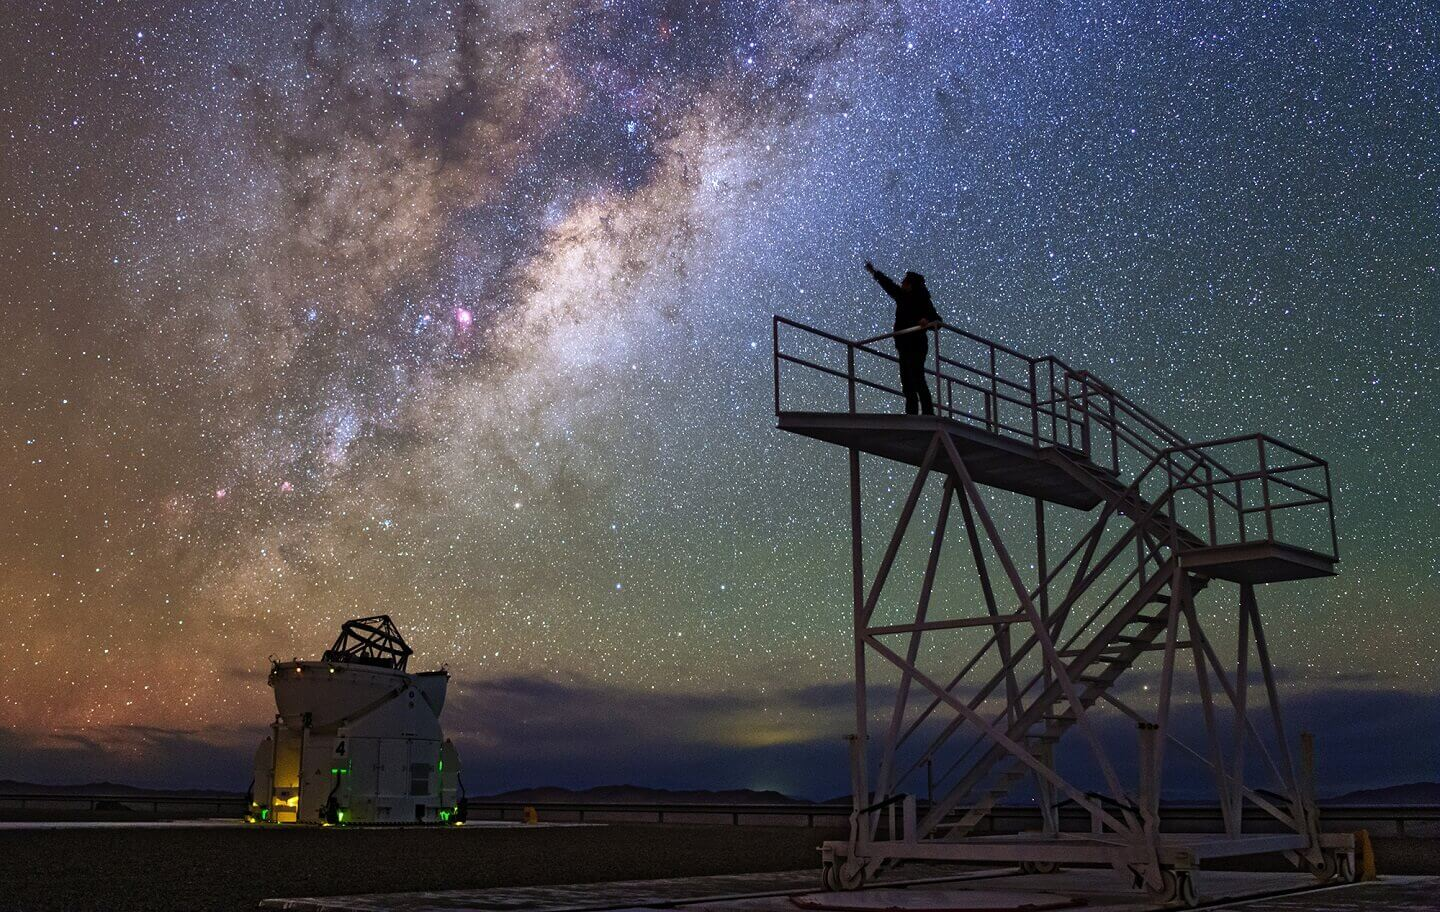 https://storage.googleapis.com/chile-travel-static-content/2017/03/Paranal_llegando-a-las-estrellas_ESOB.-Tafreshi.jpg